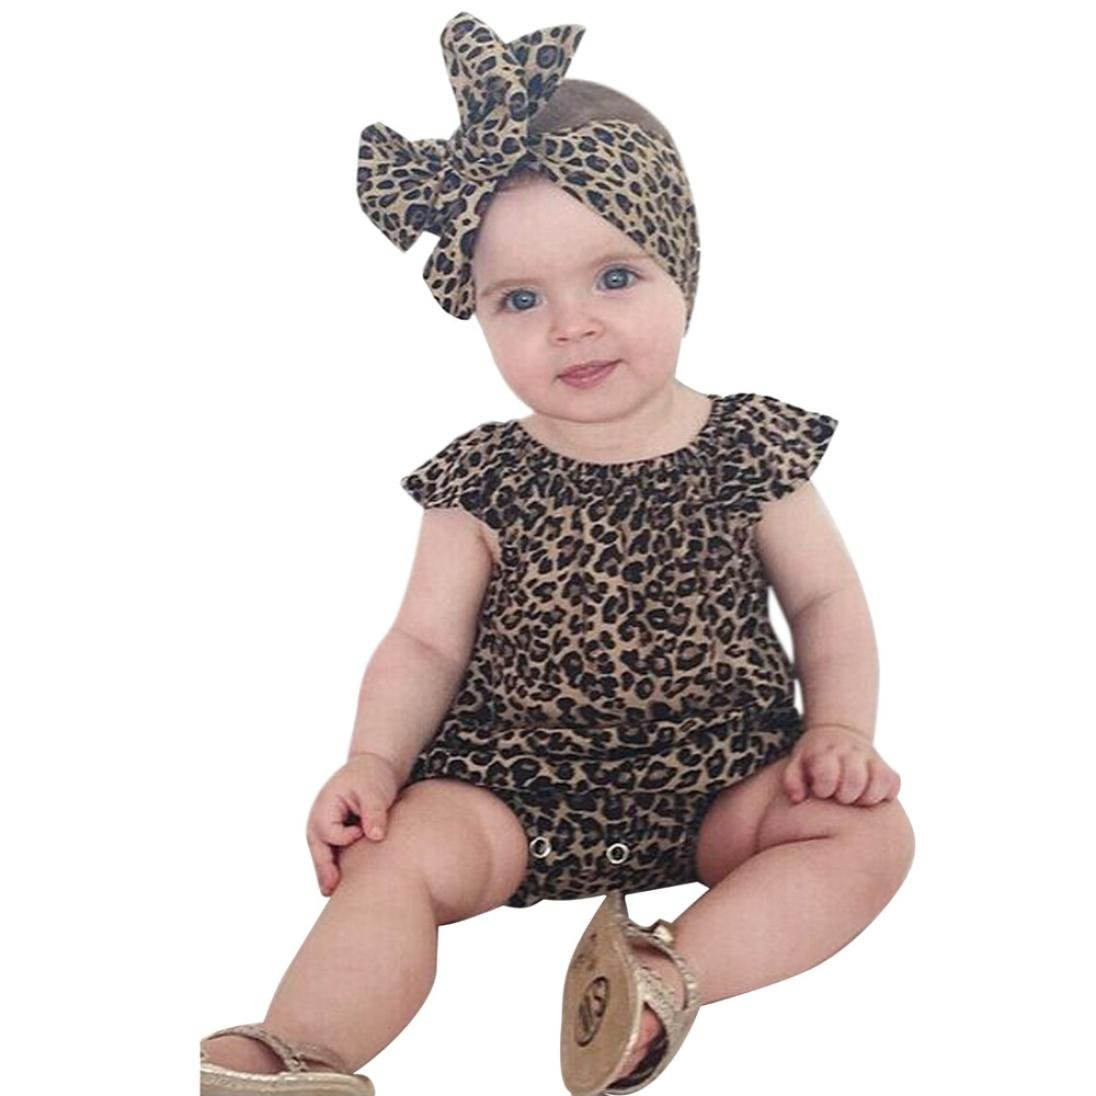 d157ae31307e Amazon.com  TIFENNY Newest Baby Boy Girl Leopard Outfit Romper ...